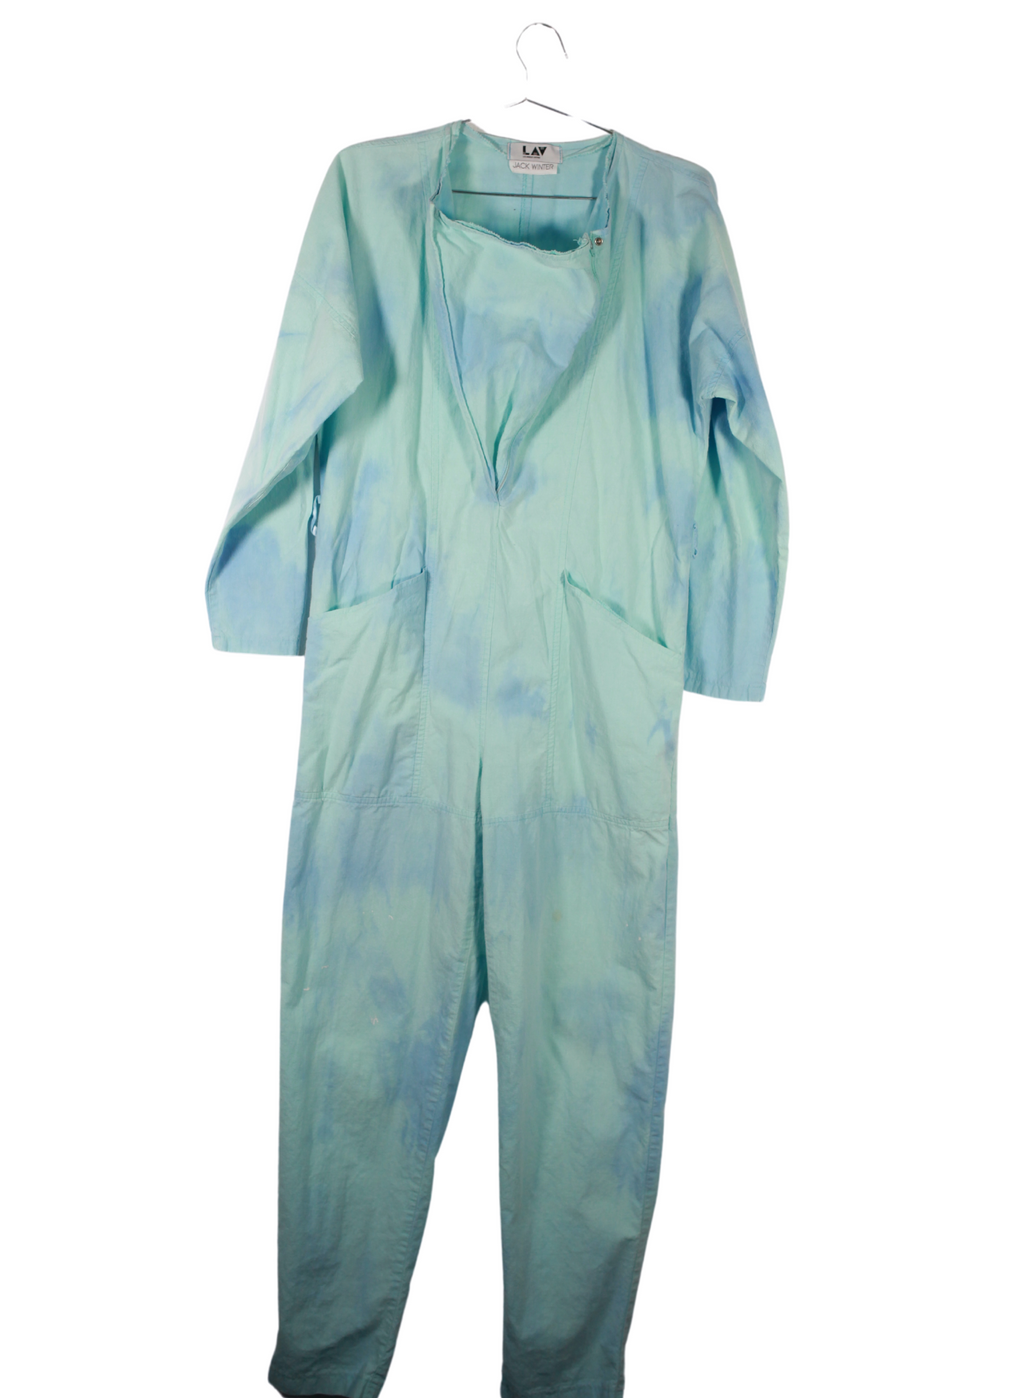 Vintage Jack Winter Cloud Painters Jumpsuit